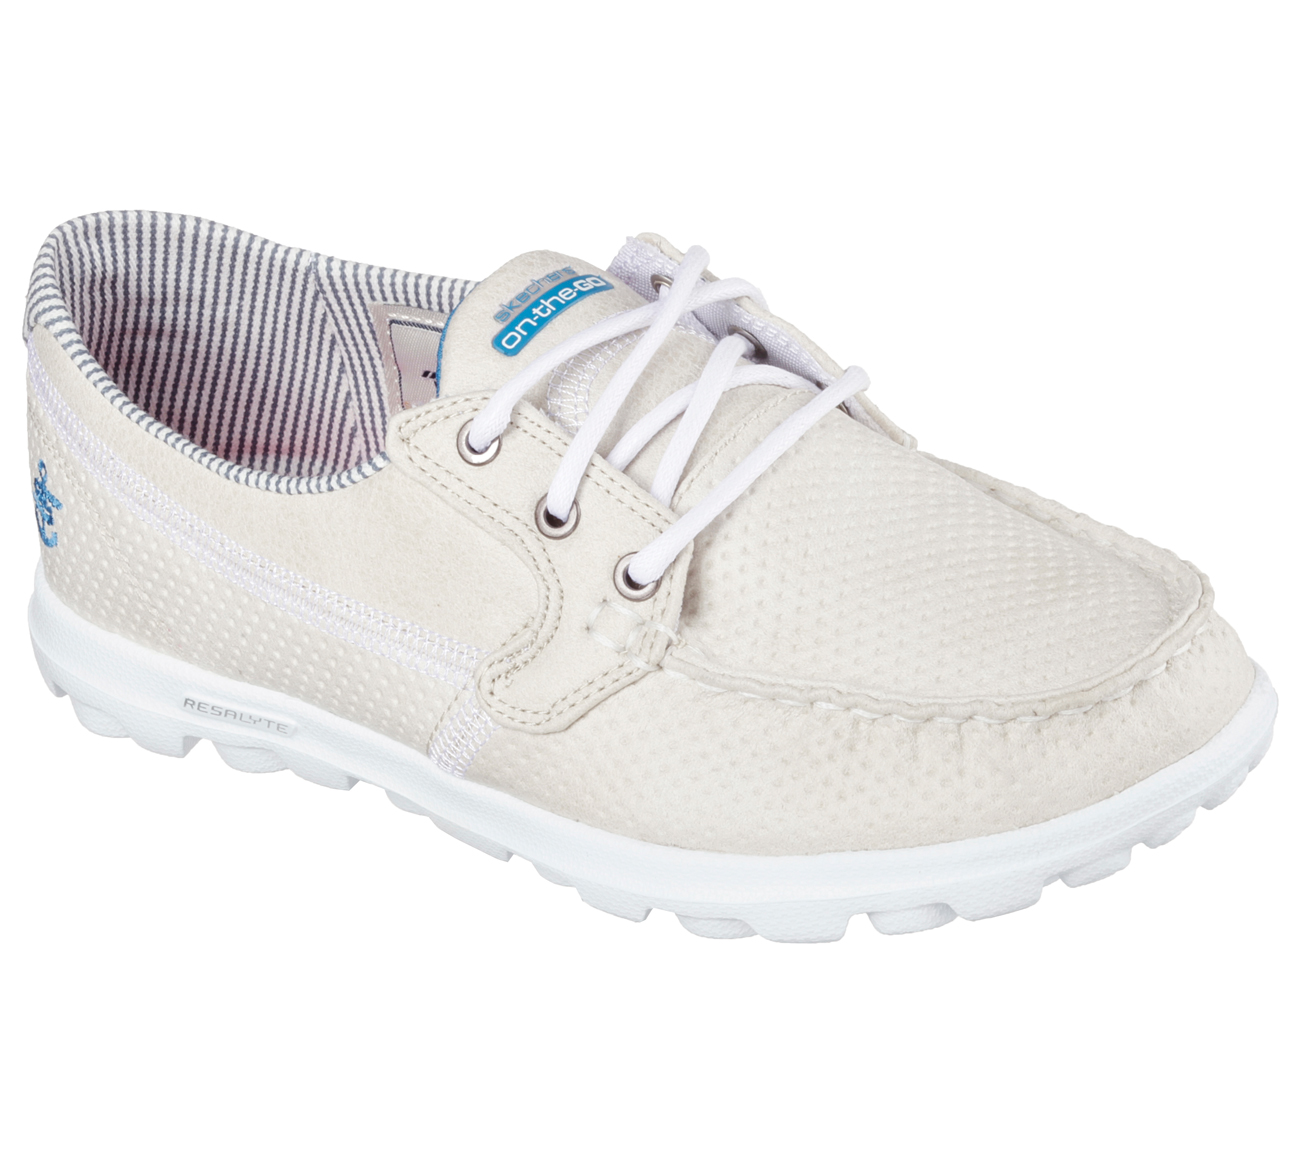 Buy Skechers Skechers On The Go Tide Walking Shoes Shoes